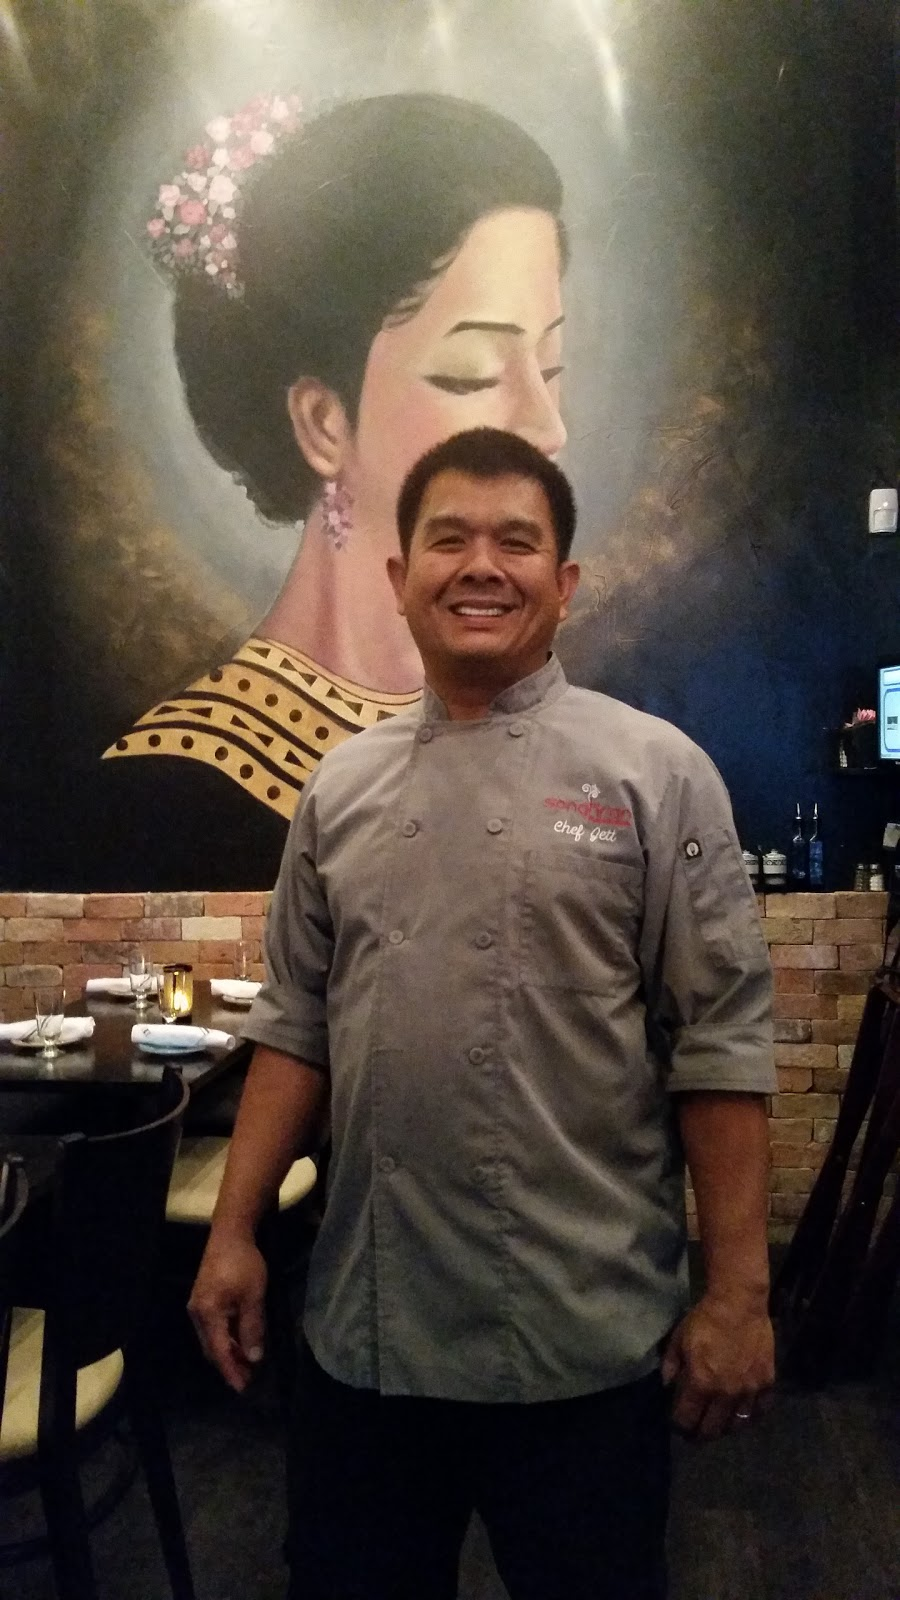 A Taste of some New Menu Items from Songkran Thai Grill & Songrkan ...